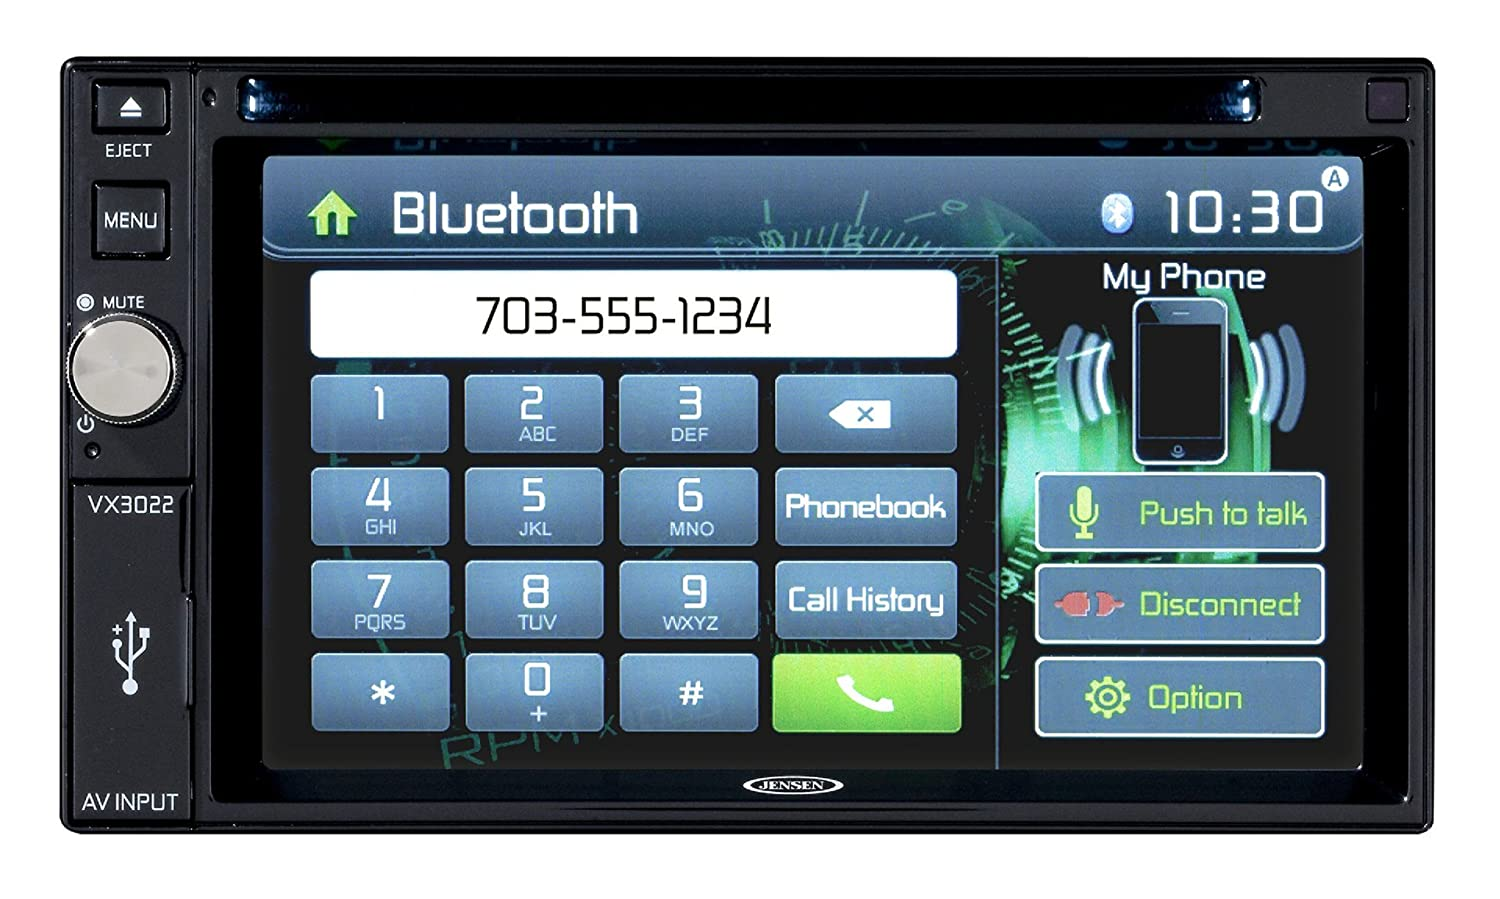 81zyPEE1sdL._SL1500_ amazon com jensen vx3022 6 2 inch lcd multimedia touch screen Ford Electrical Wiring Diagrams at webbmarketing.co